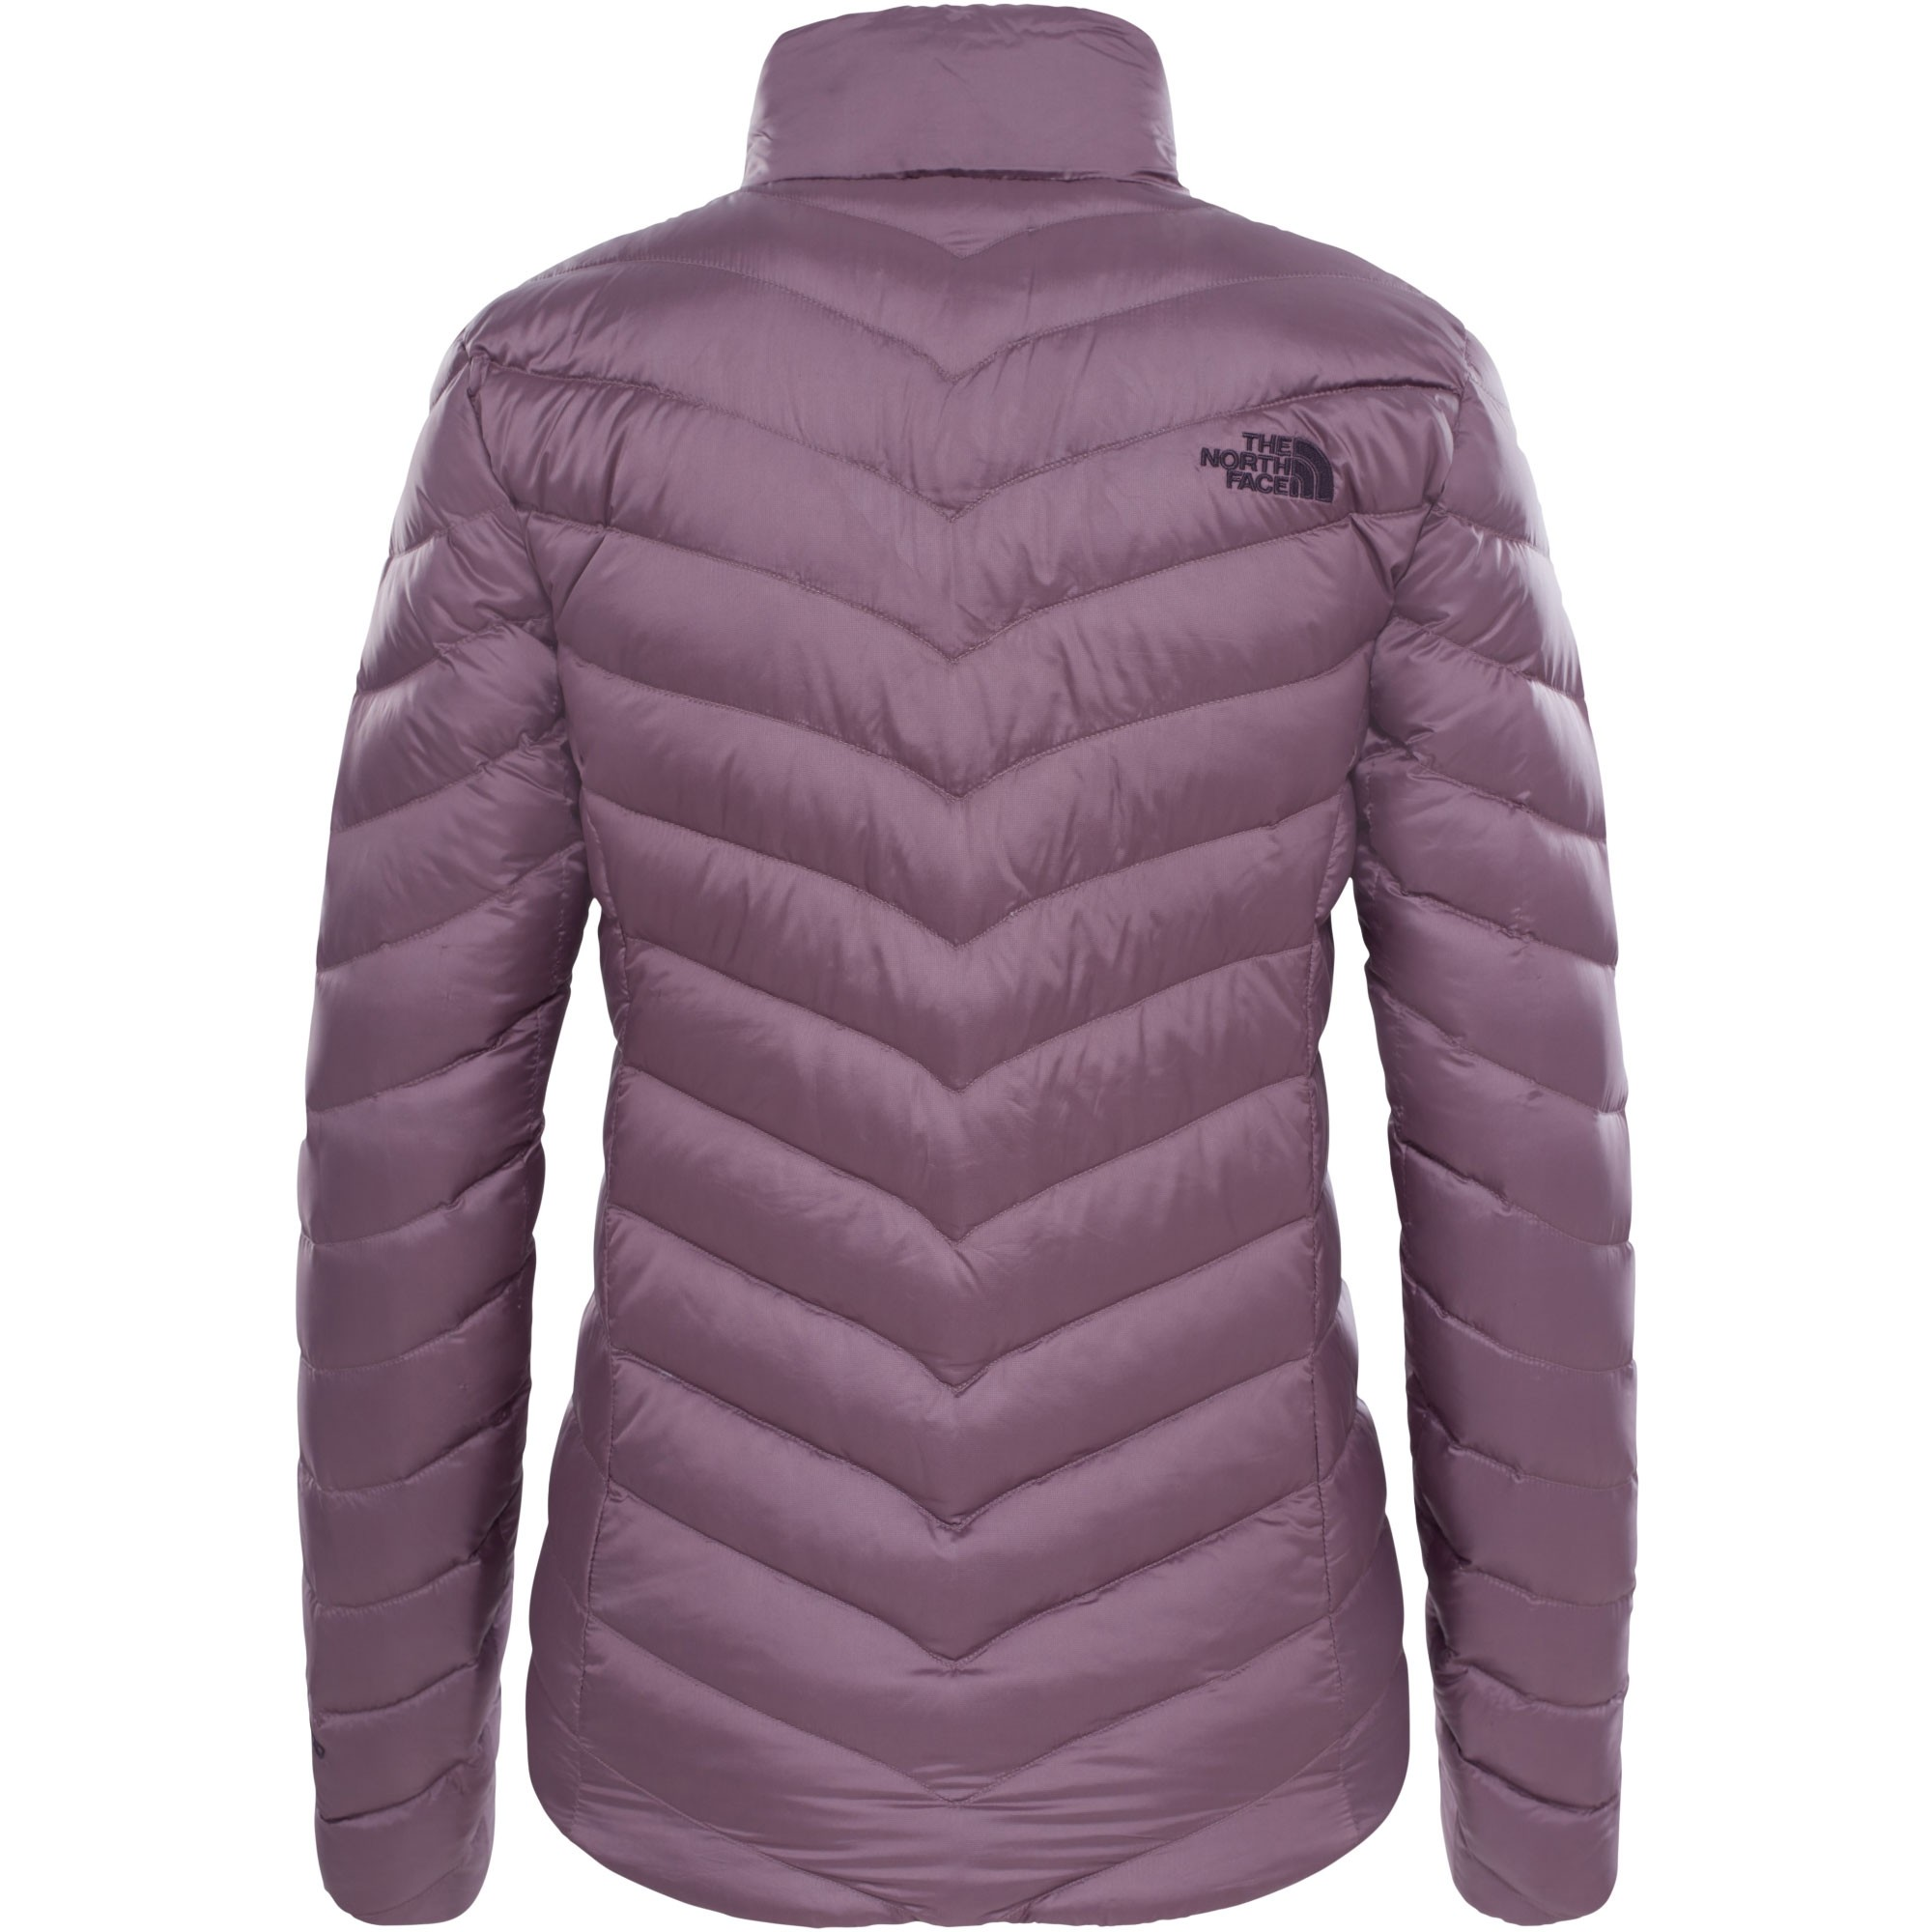 The-North-Face-Womens-Trevail-700-Jacket-Black-Plum-1-W17